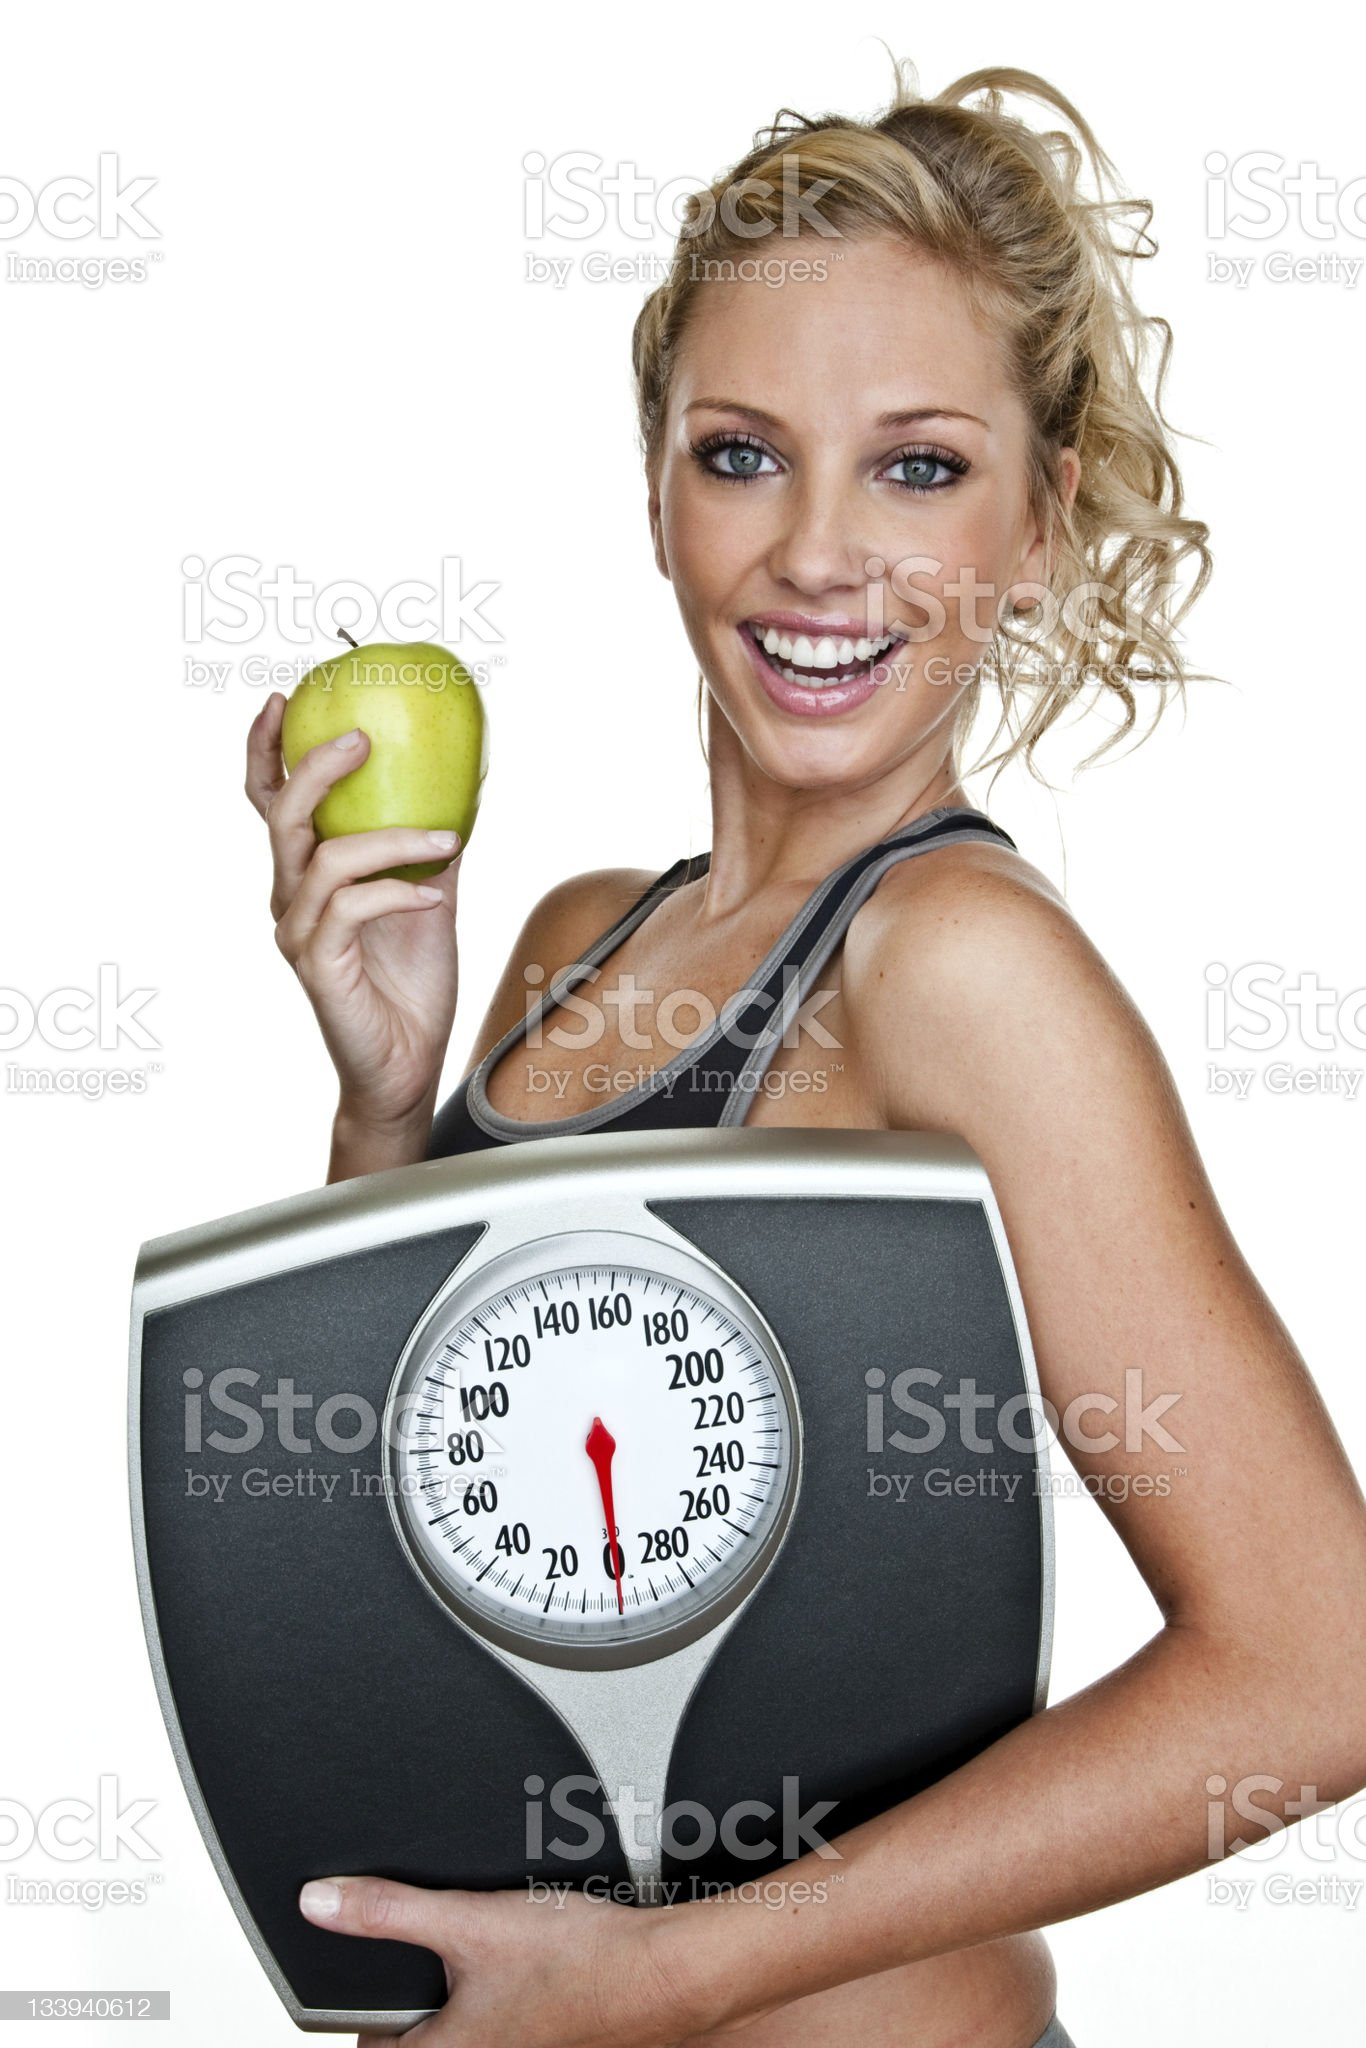 Fit woman holding a scale and apple royalty-free stock photo